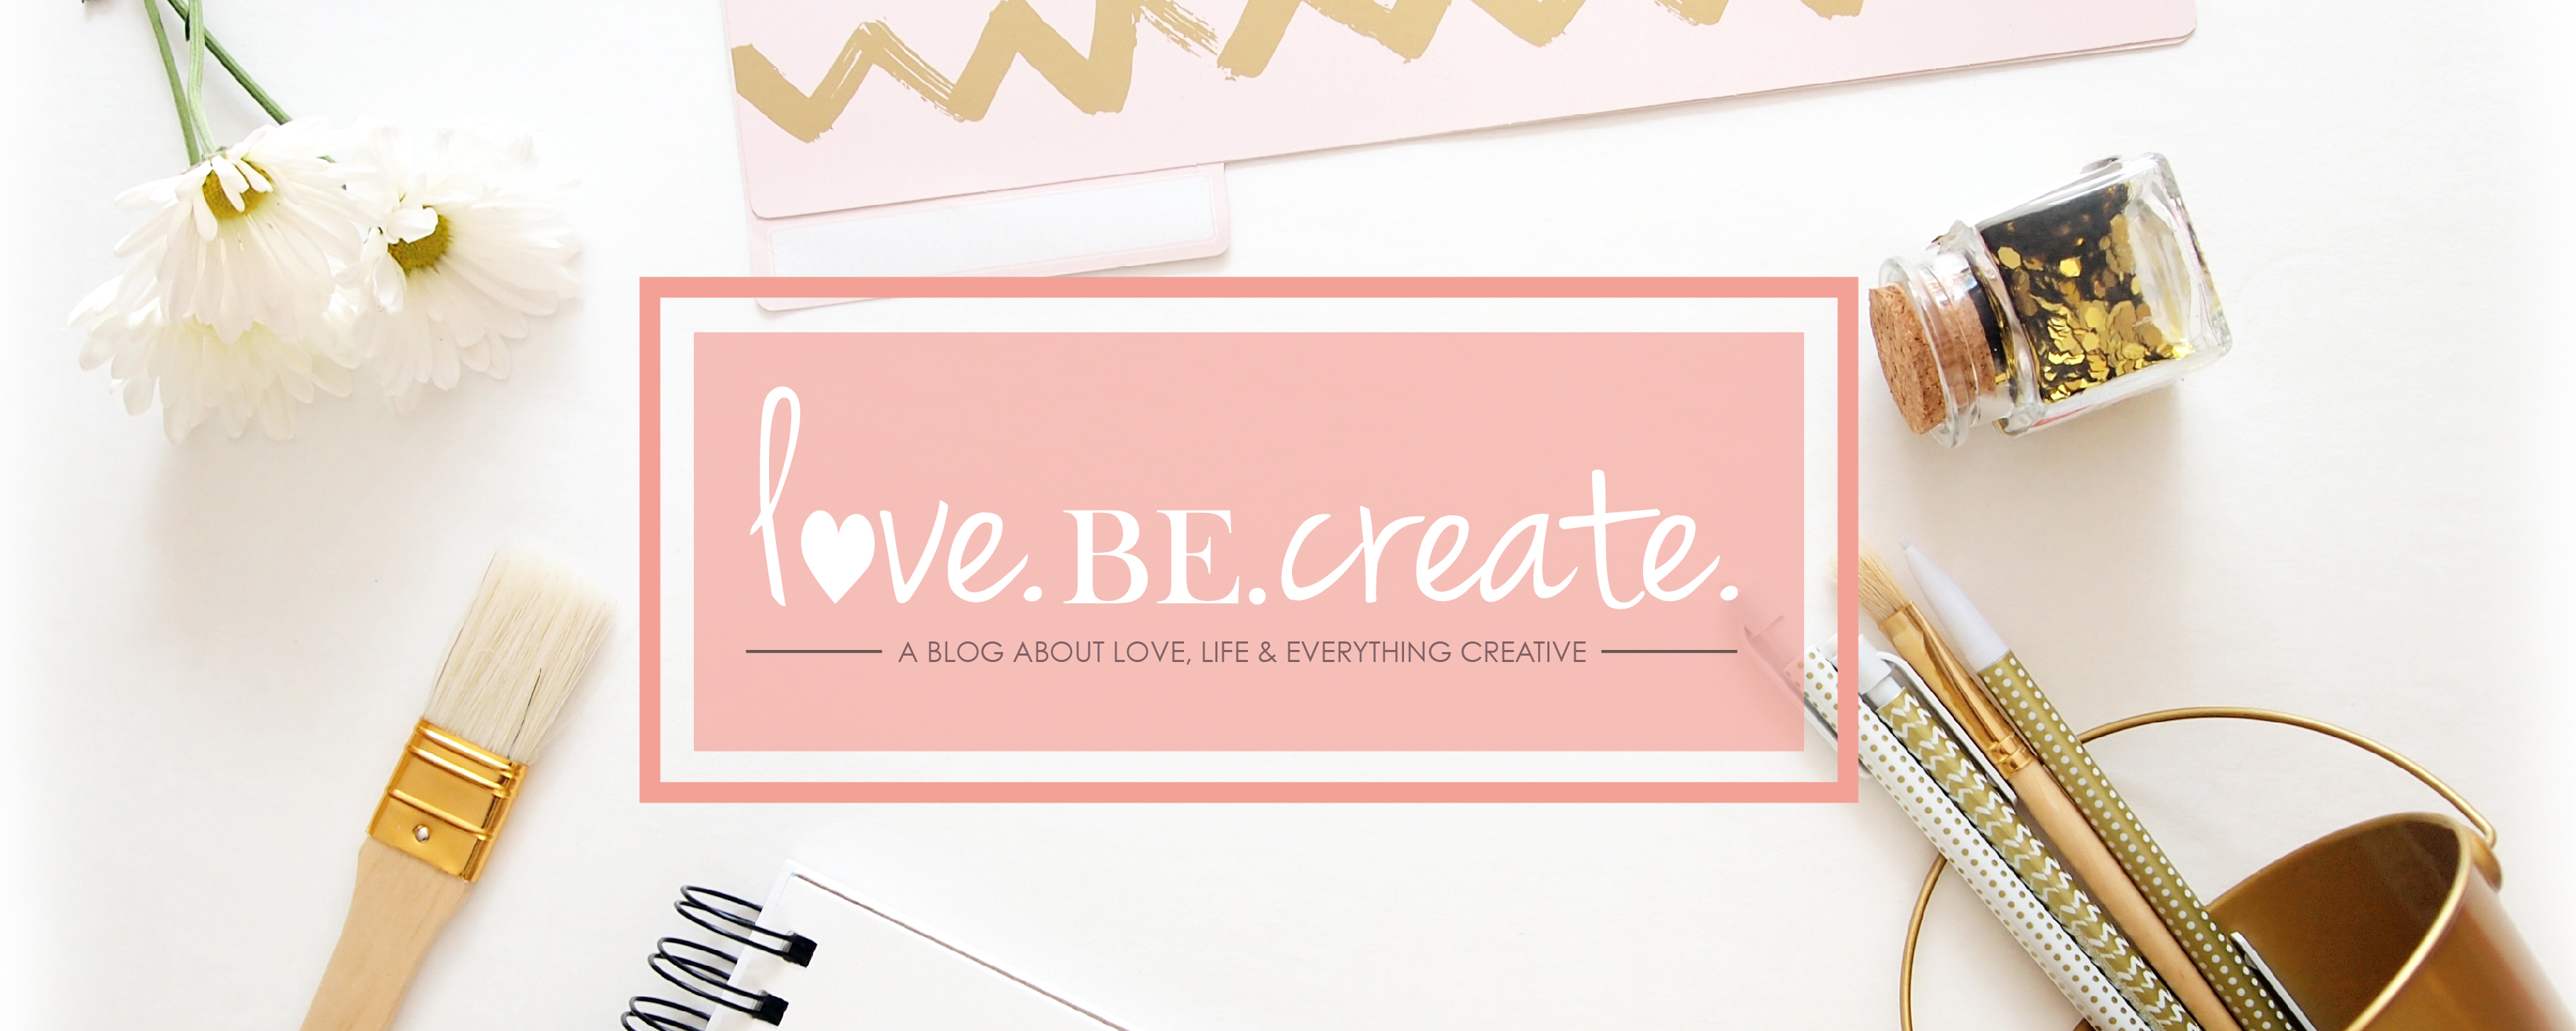 LoveBeCreate.com